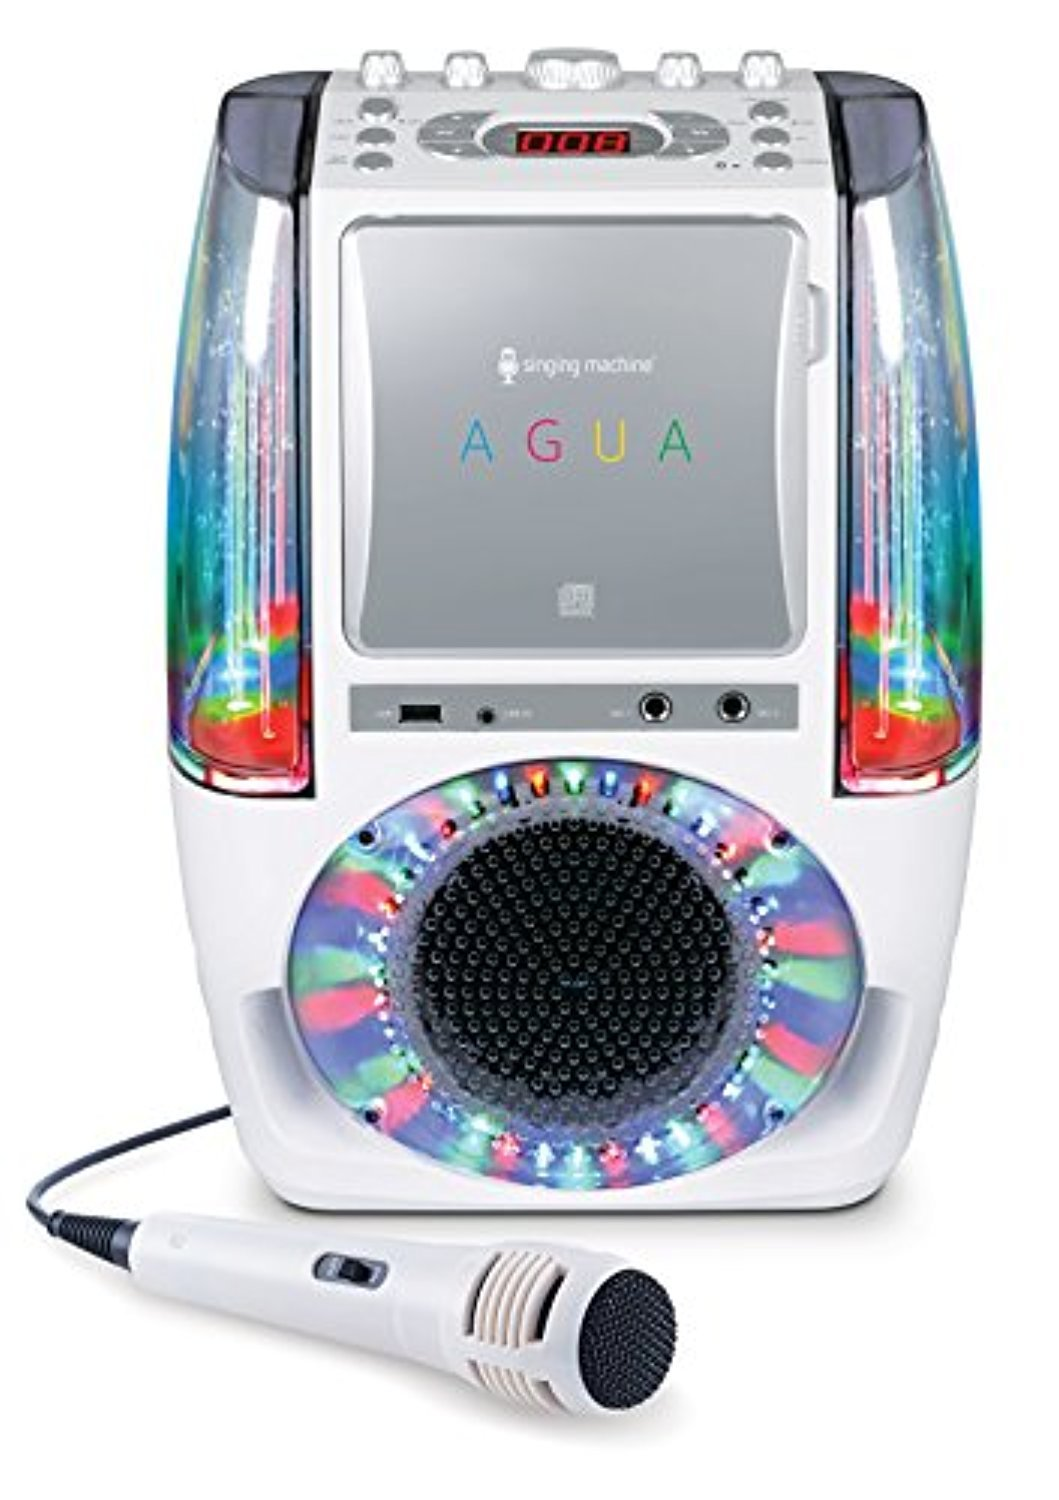 Bundle Includes 2 Items - Singing Machine SML605W Agua Dancing Water Fountain Karaoke System with LED Disco Lights & Microphone, White and Singing Machine SMM-205 Unidirectional Dynamic Microphone by Singing Machine and Singing Machine (Image #5)